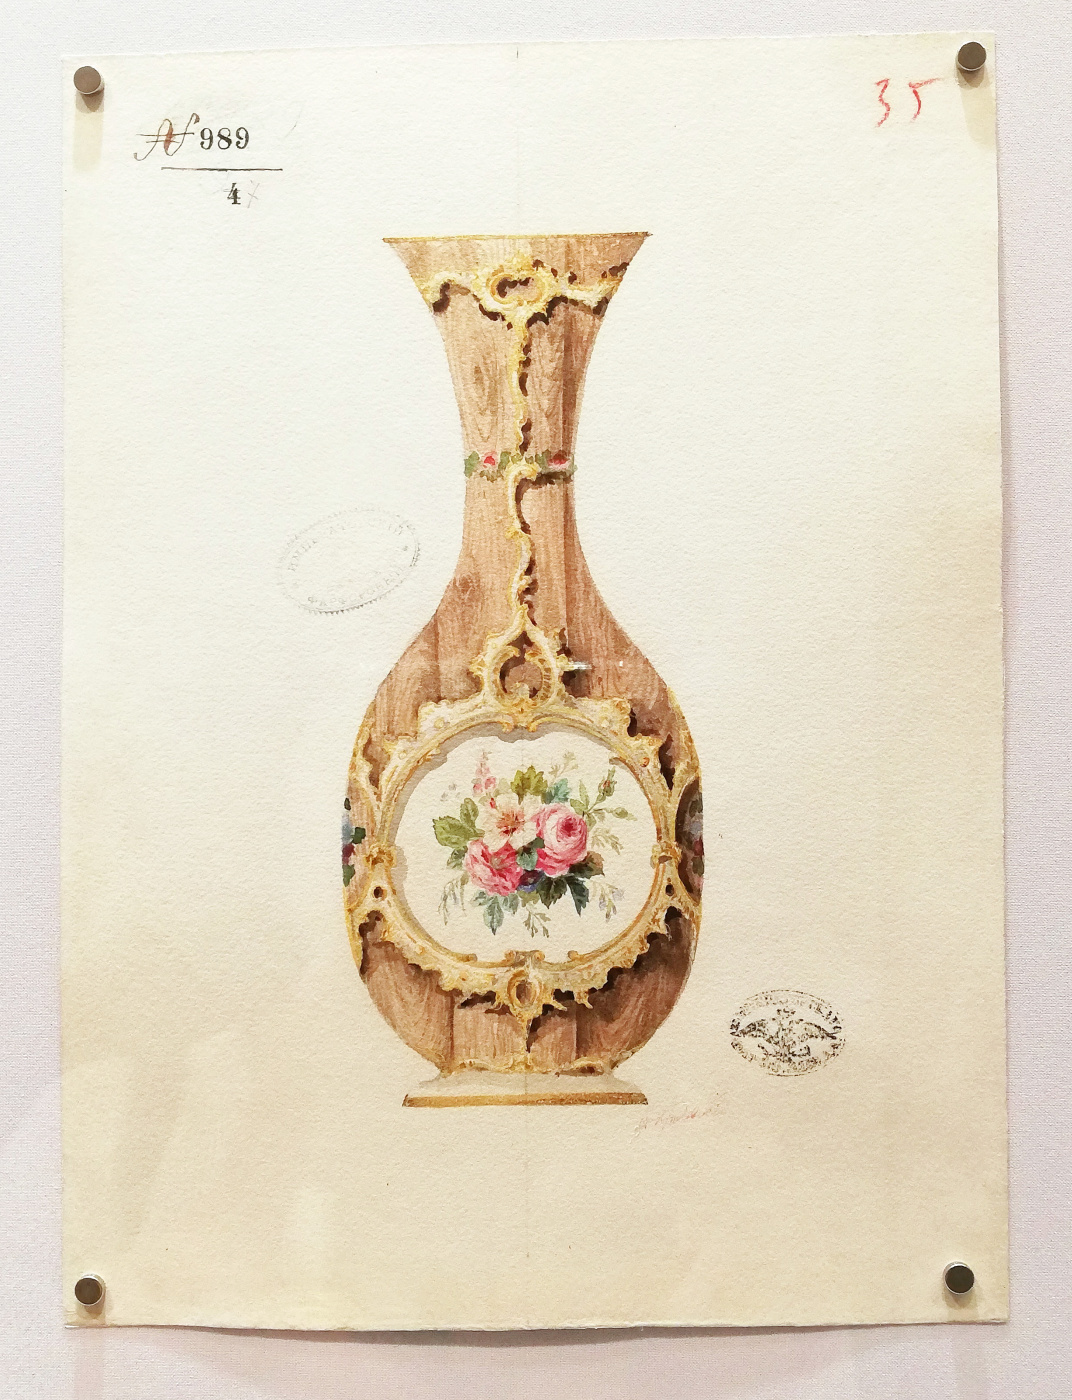 """Fedor Ivanovich Krasovsky. Sketch of a porcelain vase with painting """"under the tree"""""""